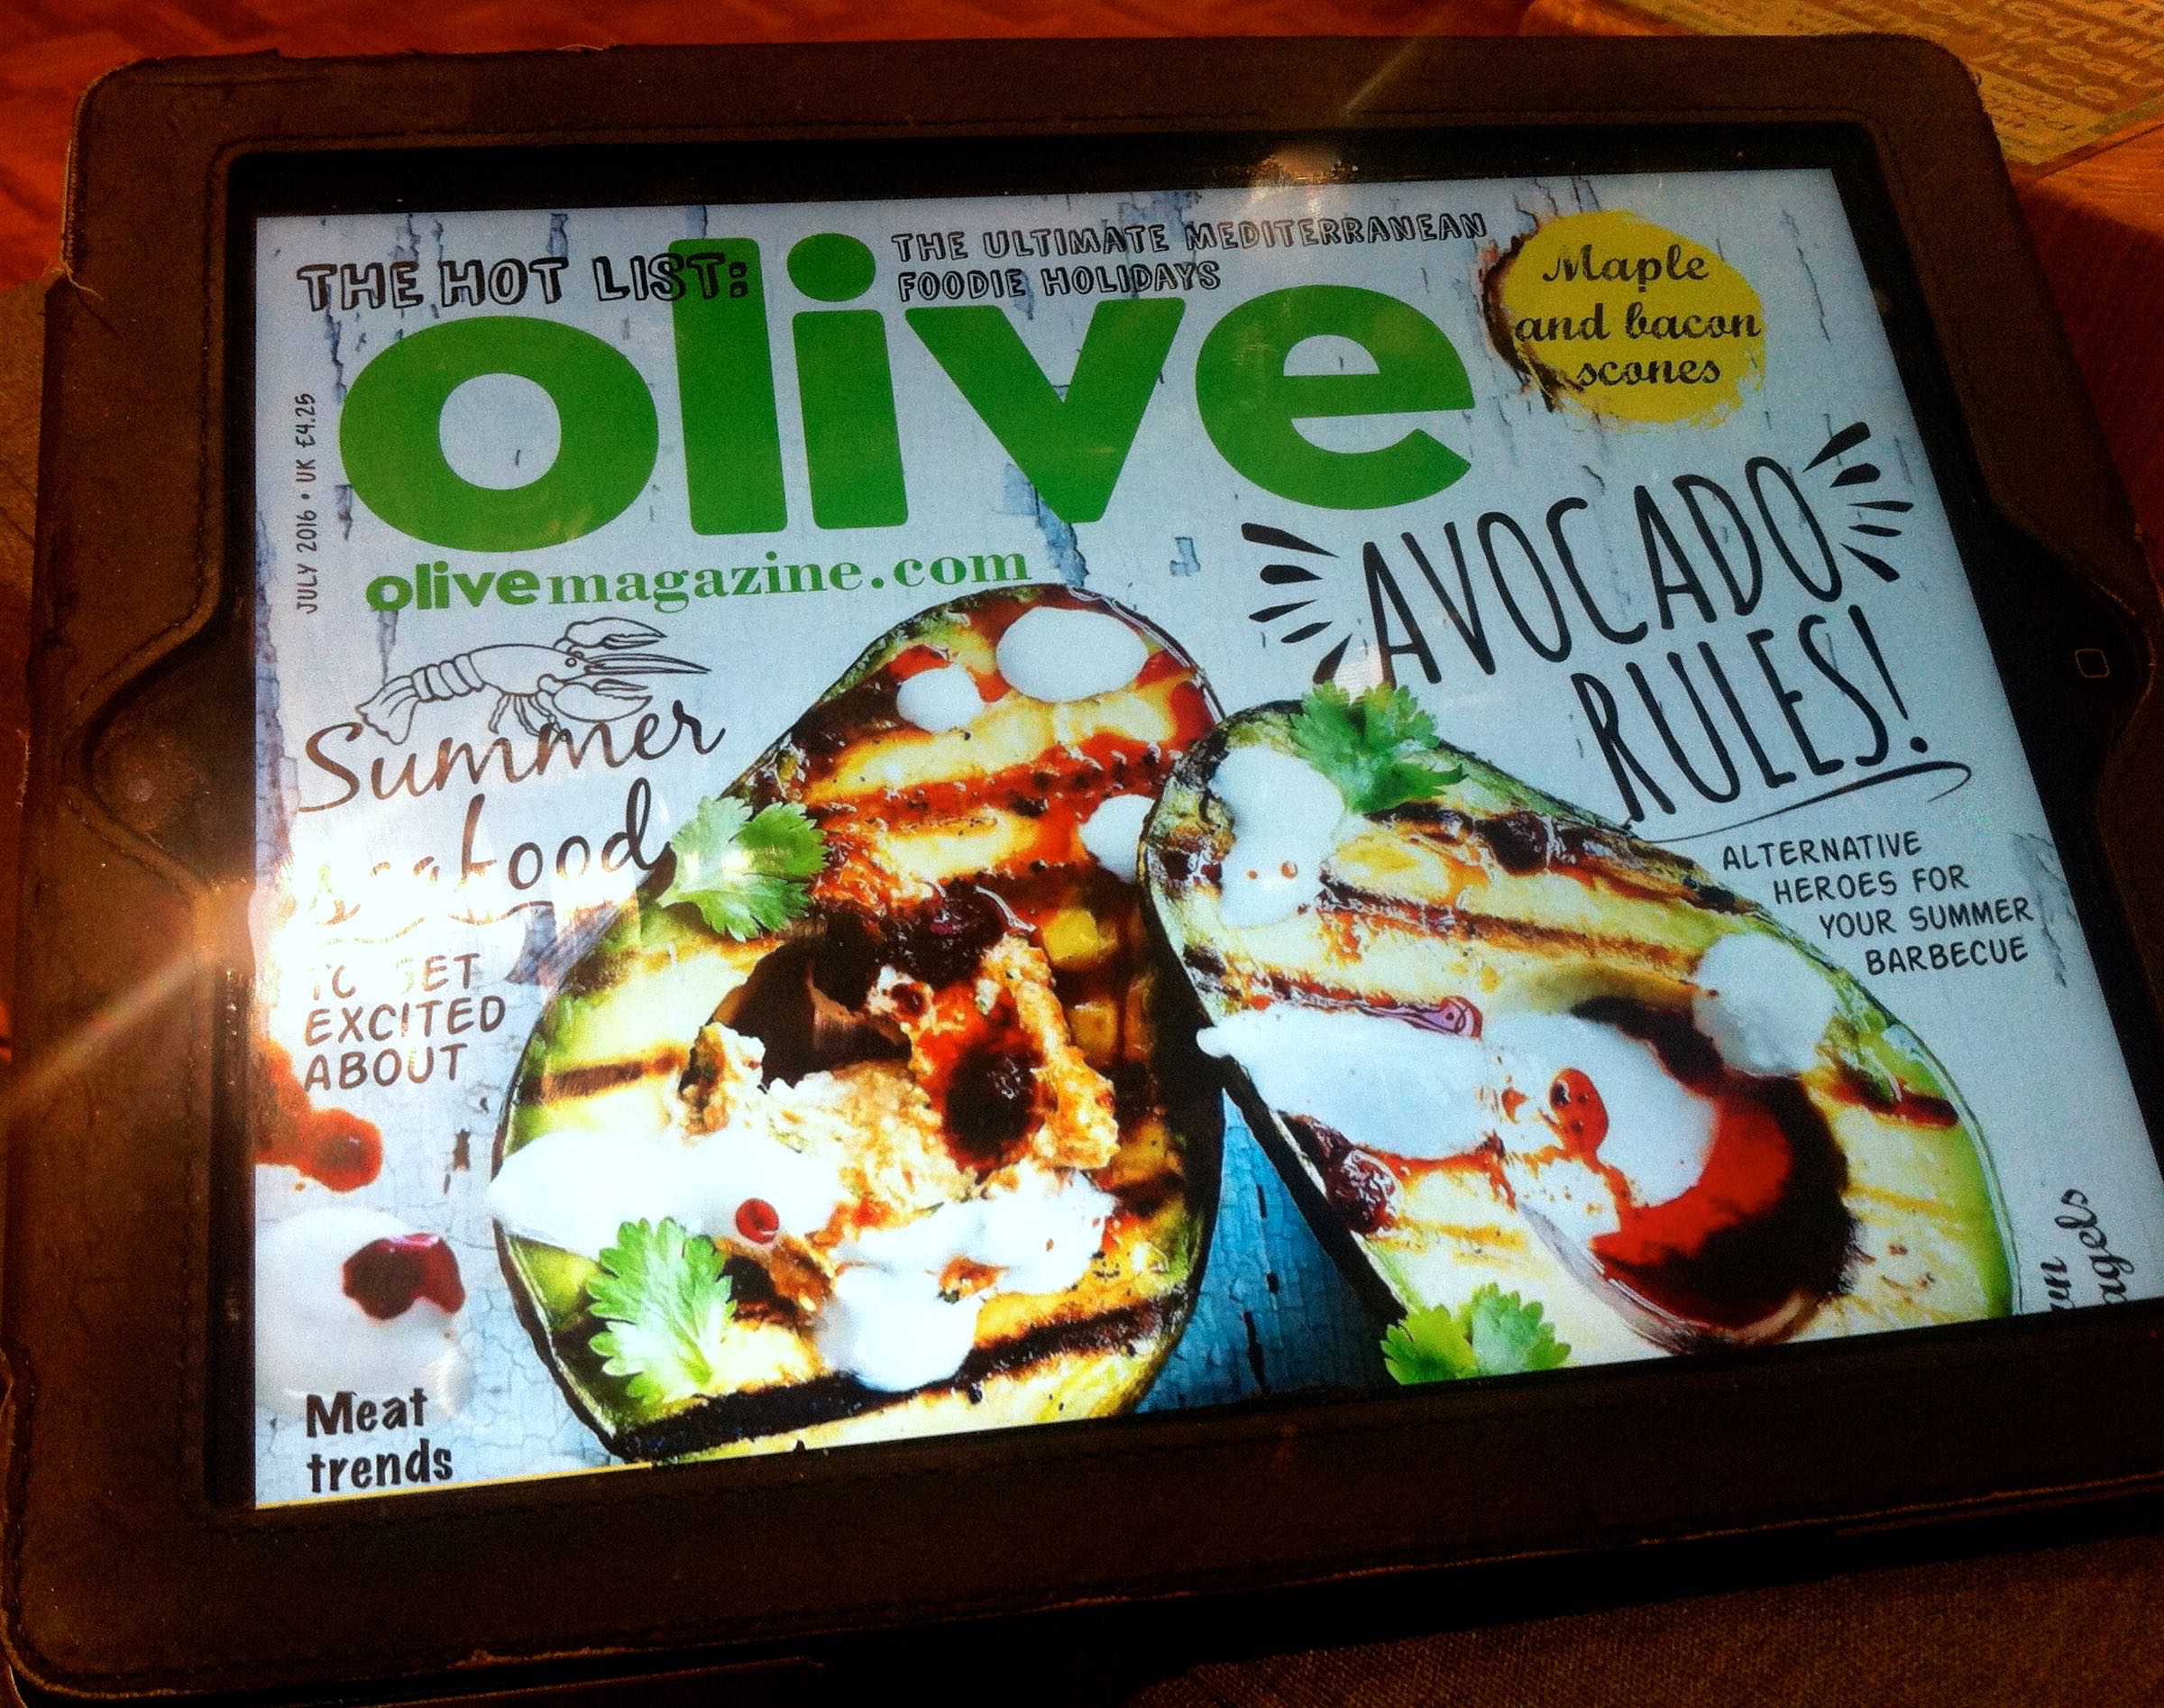 Olive magazine is one of the many available digitally on Readly